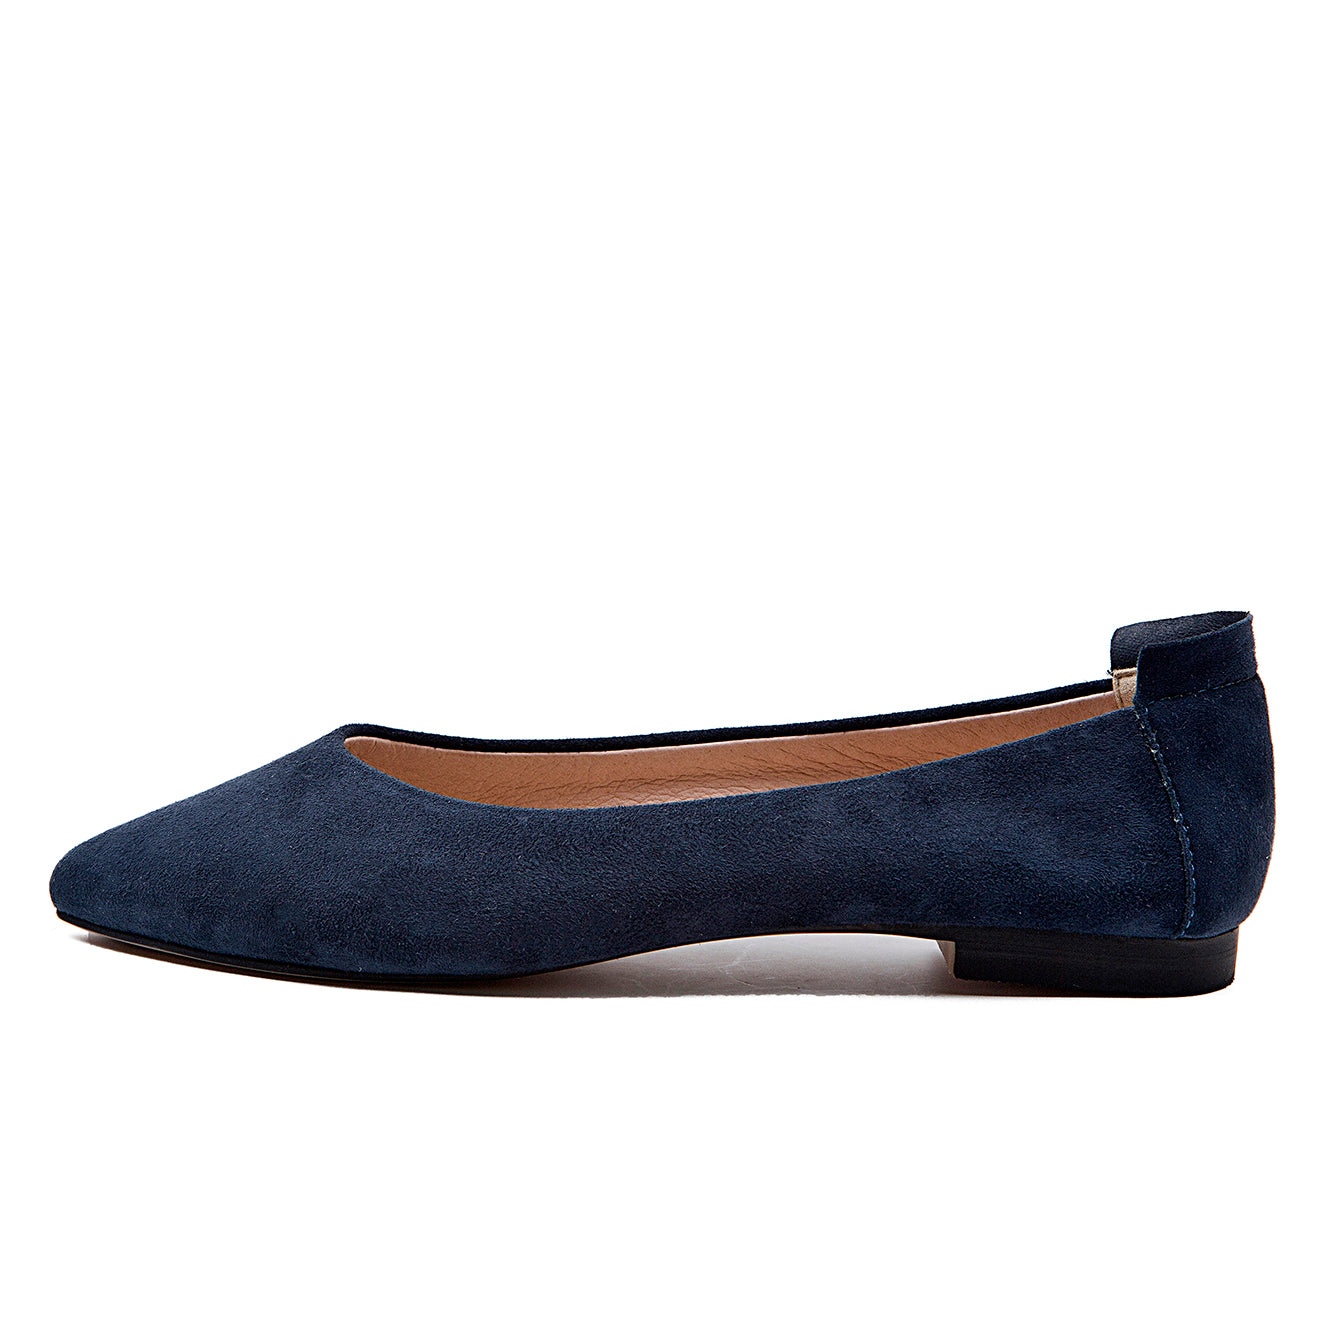 Extremely Soft Flats Shoes, Navy – BLUMEN